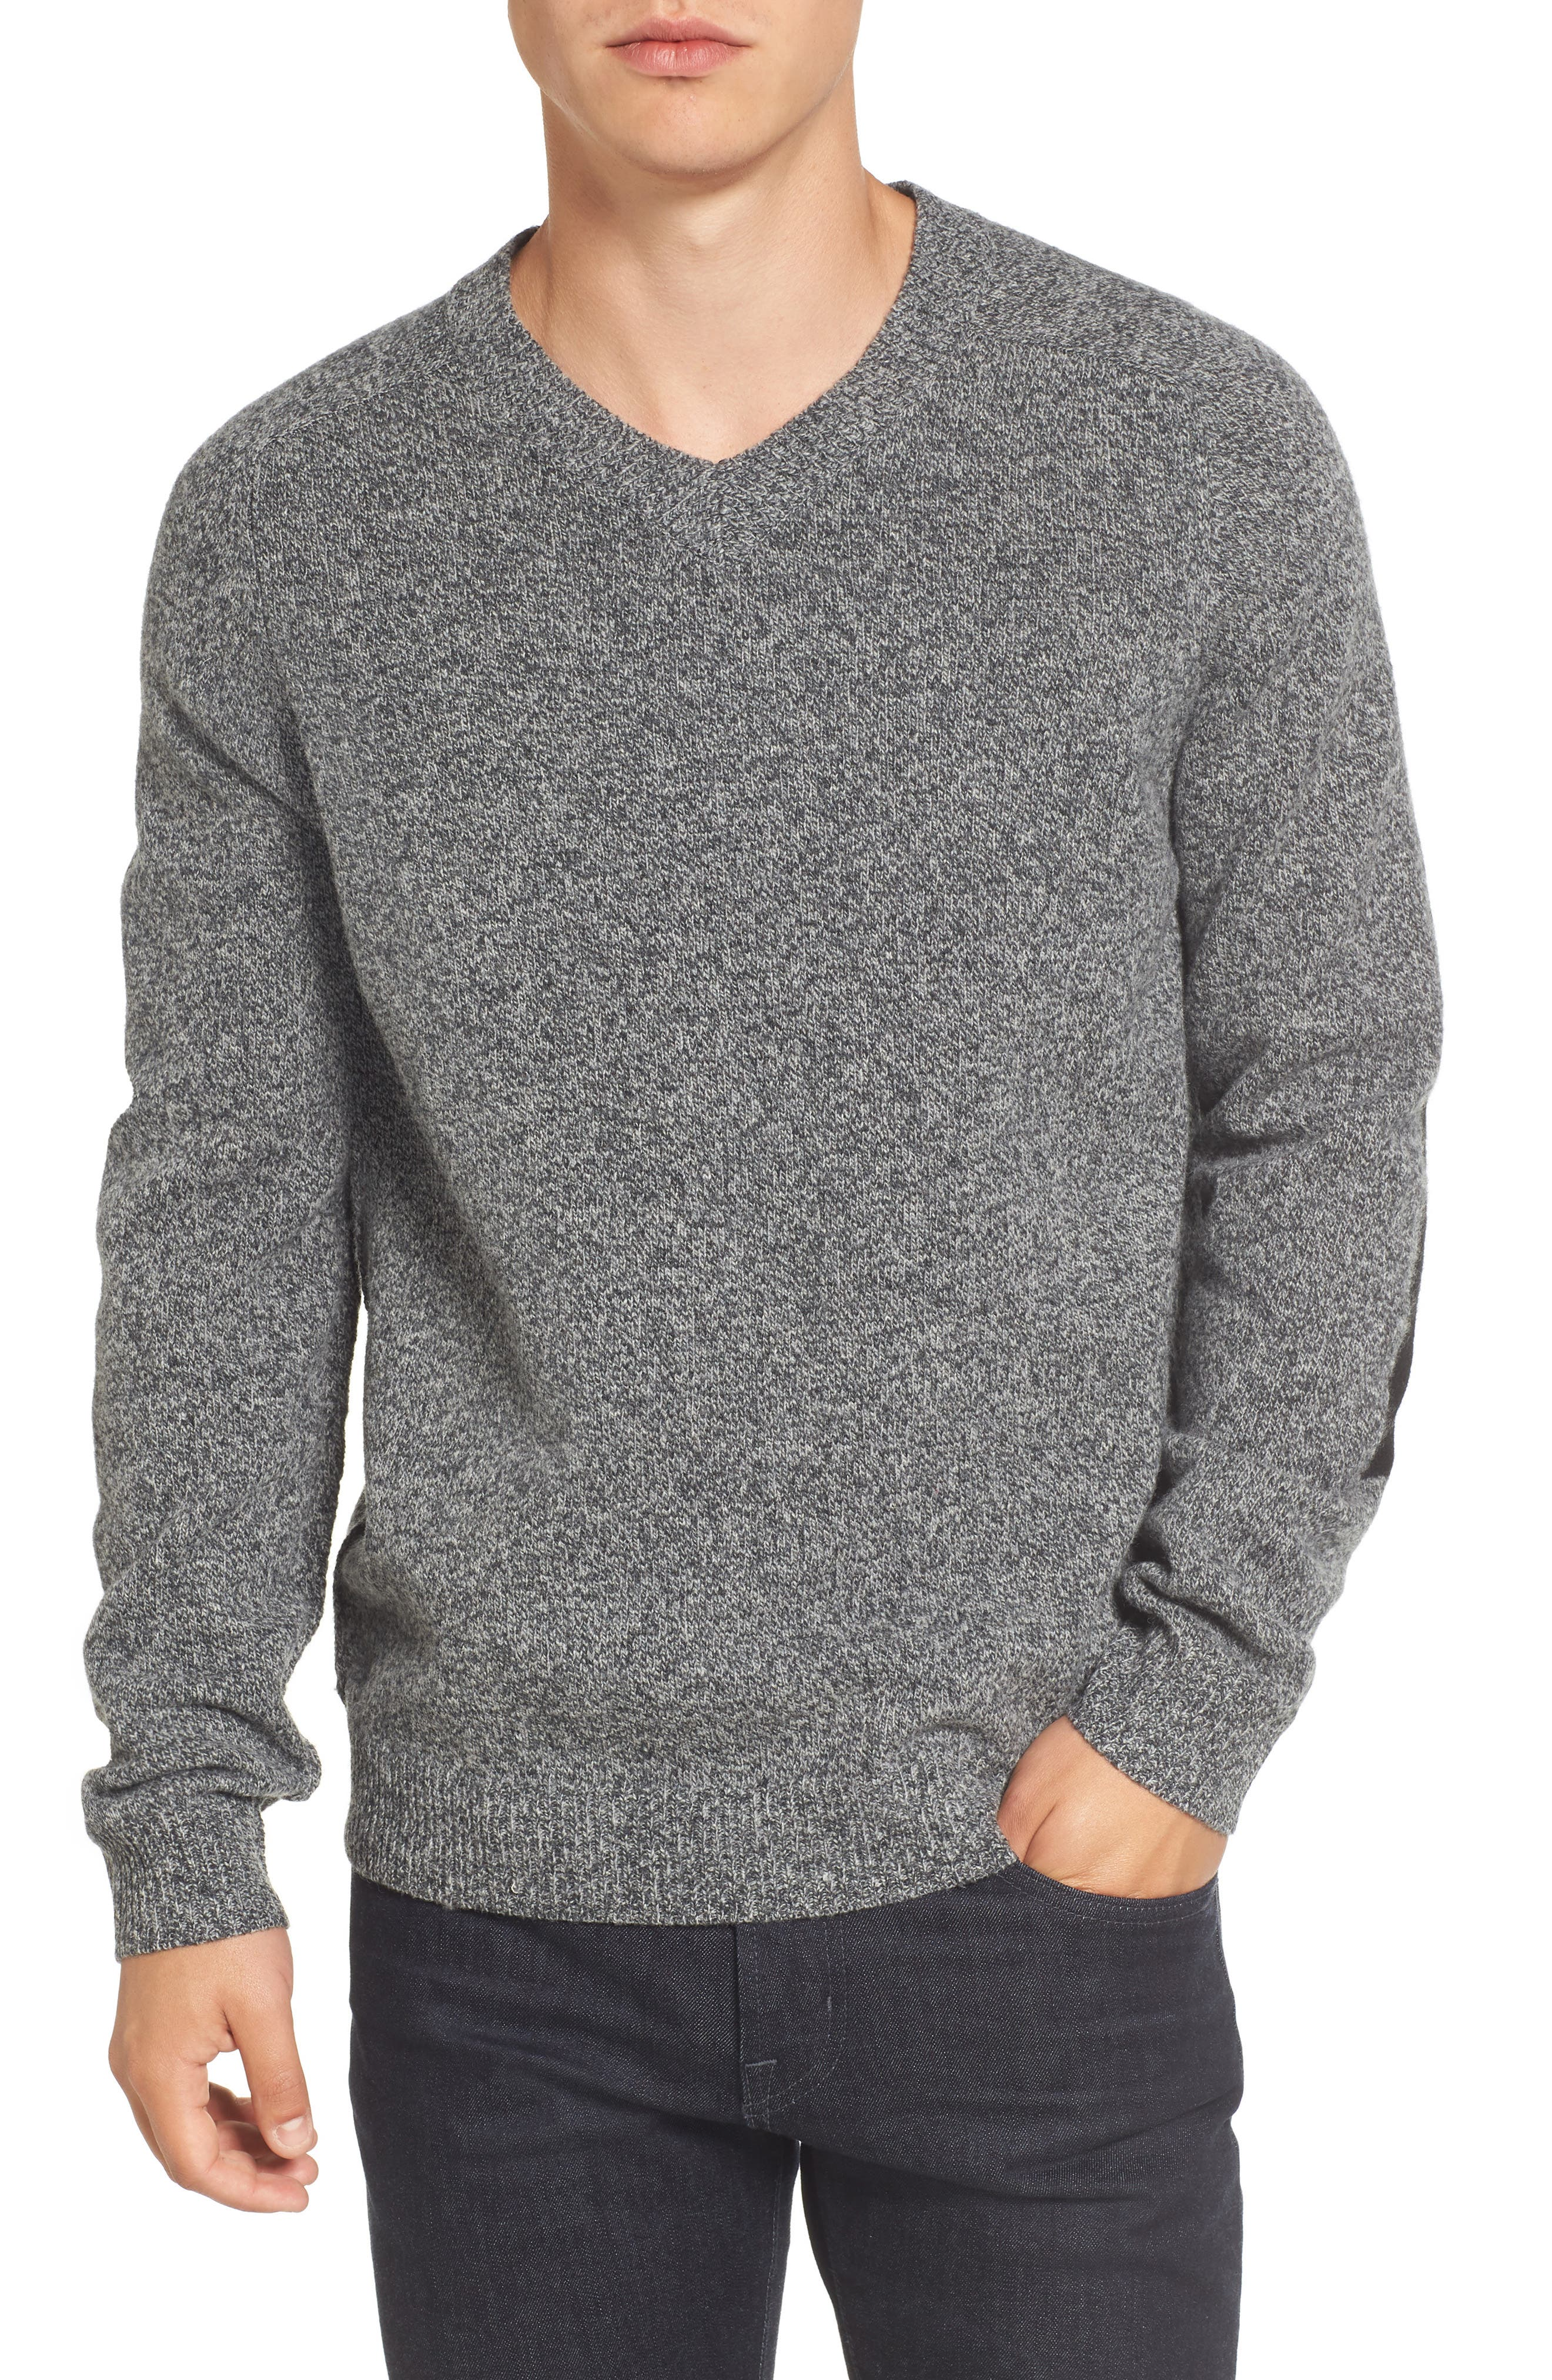 Elbow Patch Sweater,                         Main,                         color, Charcoal Twist/ Black